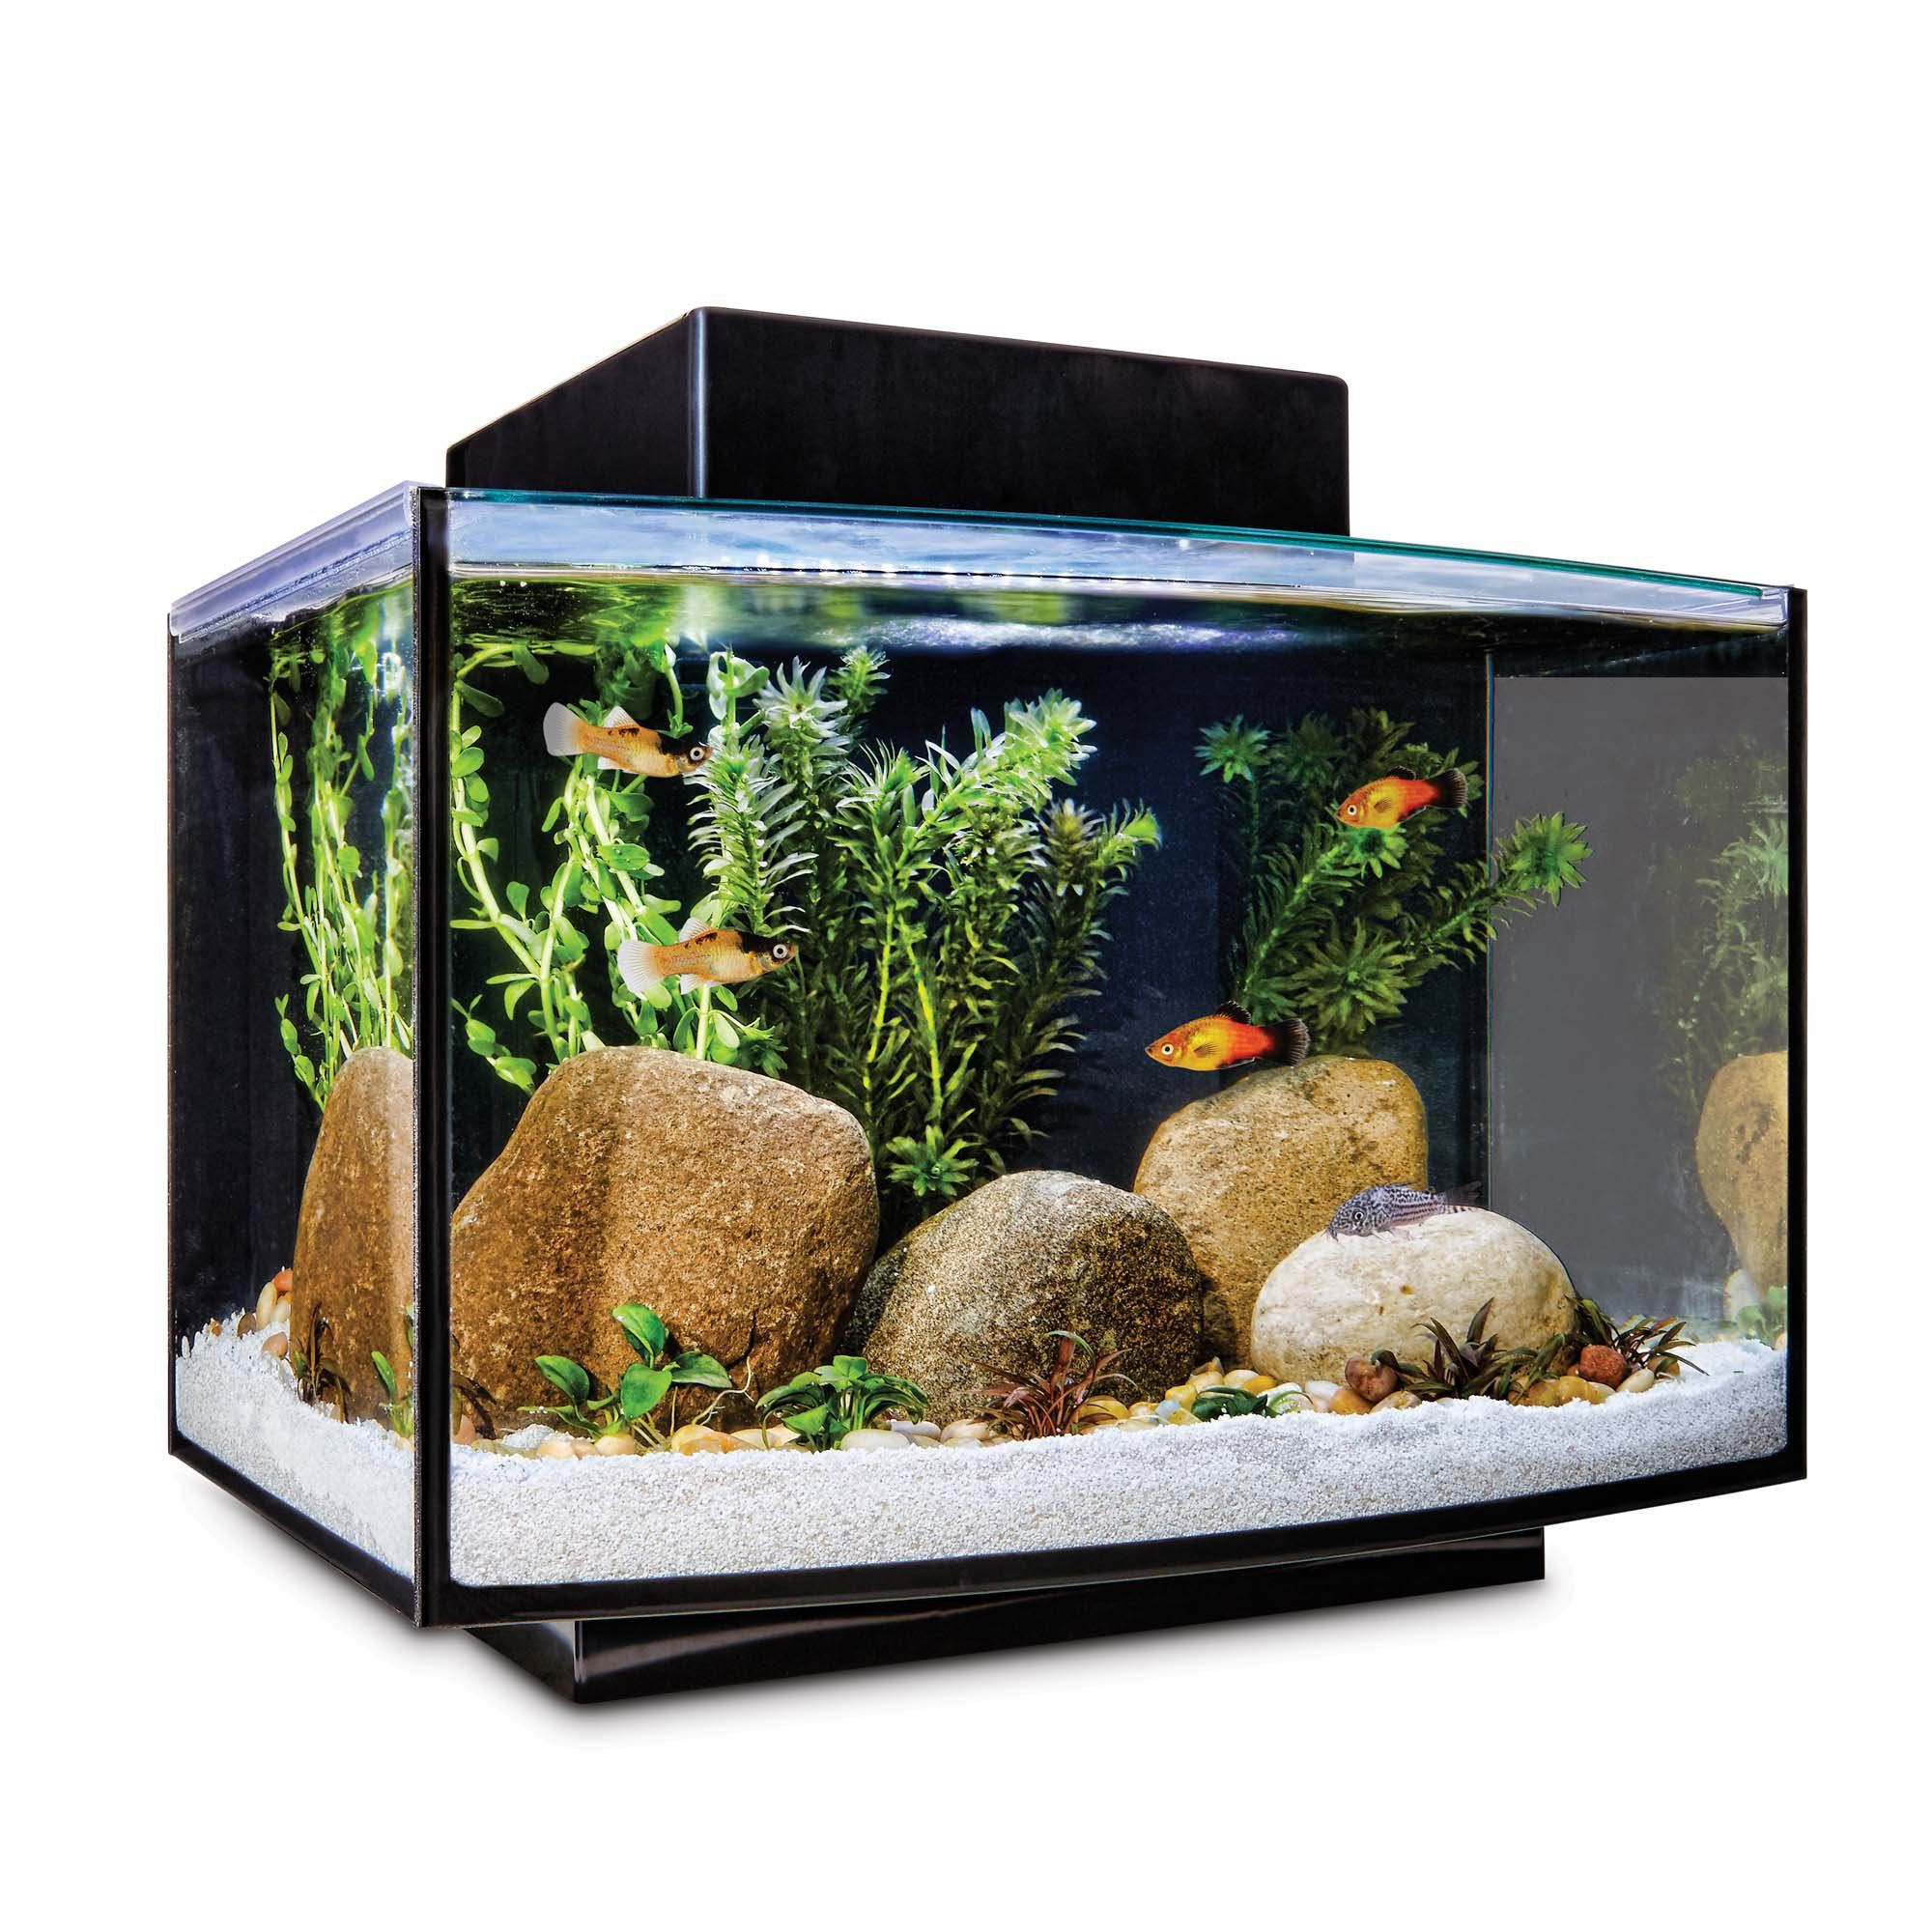 Imagitarium Platform Freshwater Aquarium Kit 6 6 Gal Freshwater Aquarium Aquarium Fresh Water Fish Tank